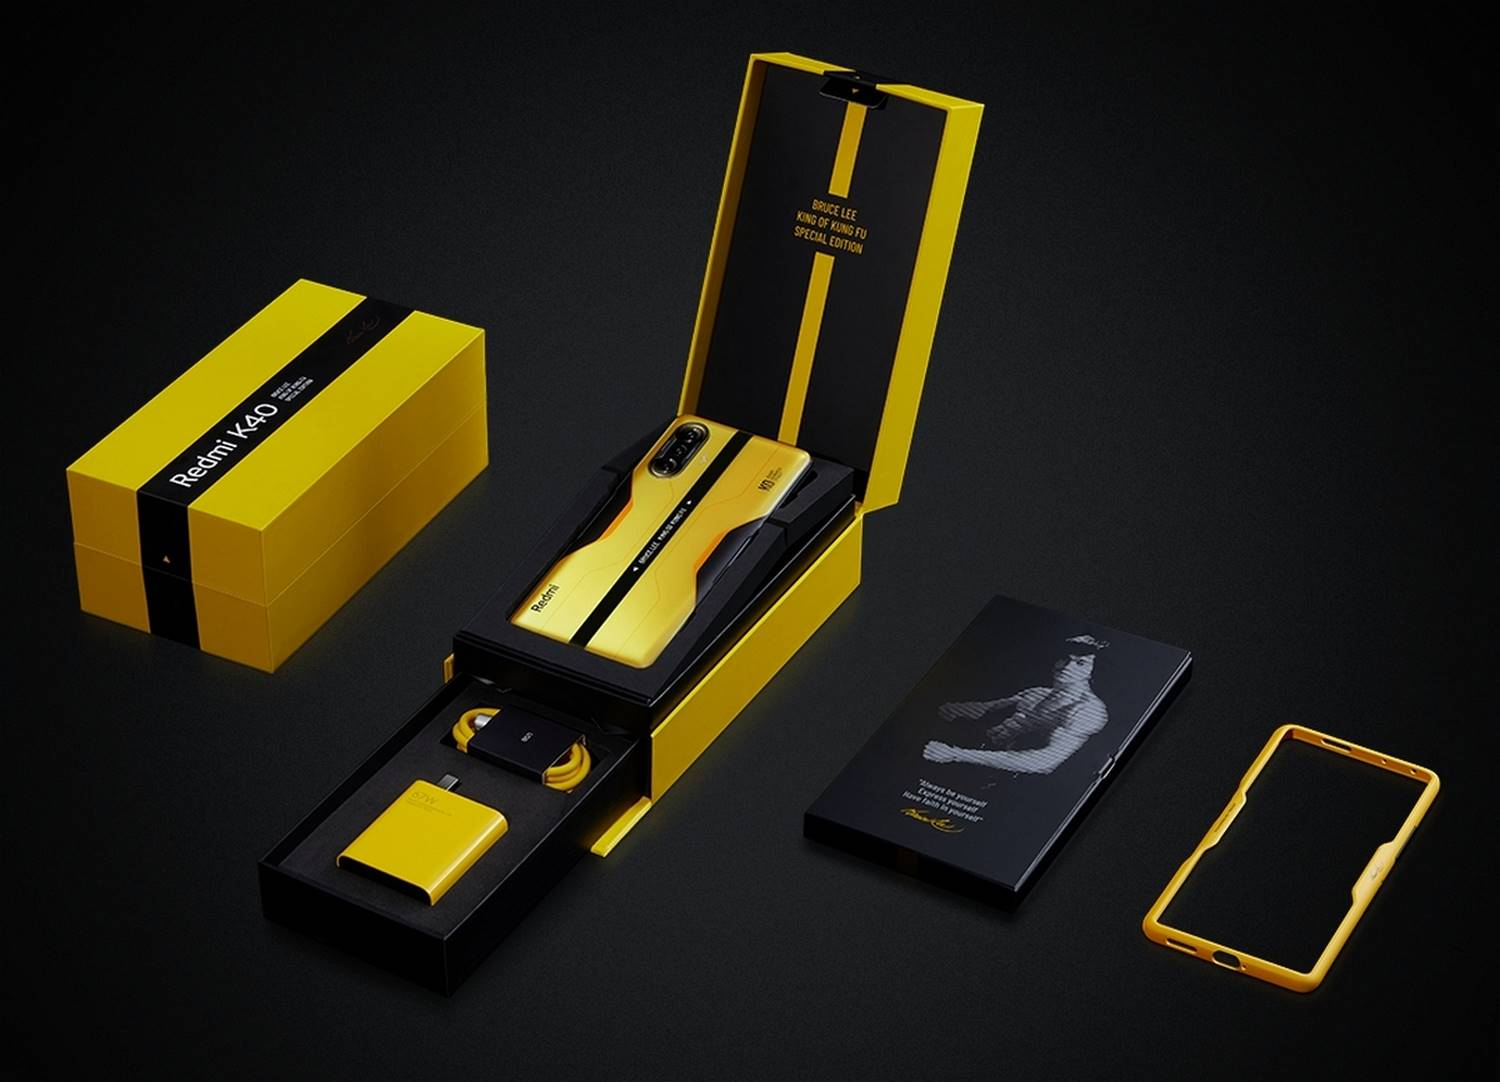 XIAOMI REDMI K40 GAMING EDITION BRUCE LEE SPECIAL EDITION - PACKAGING (1)